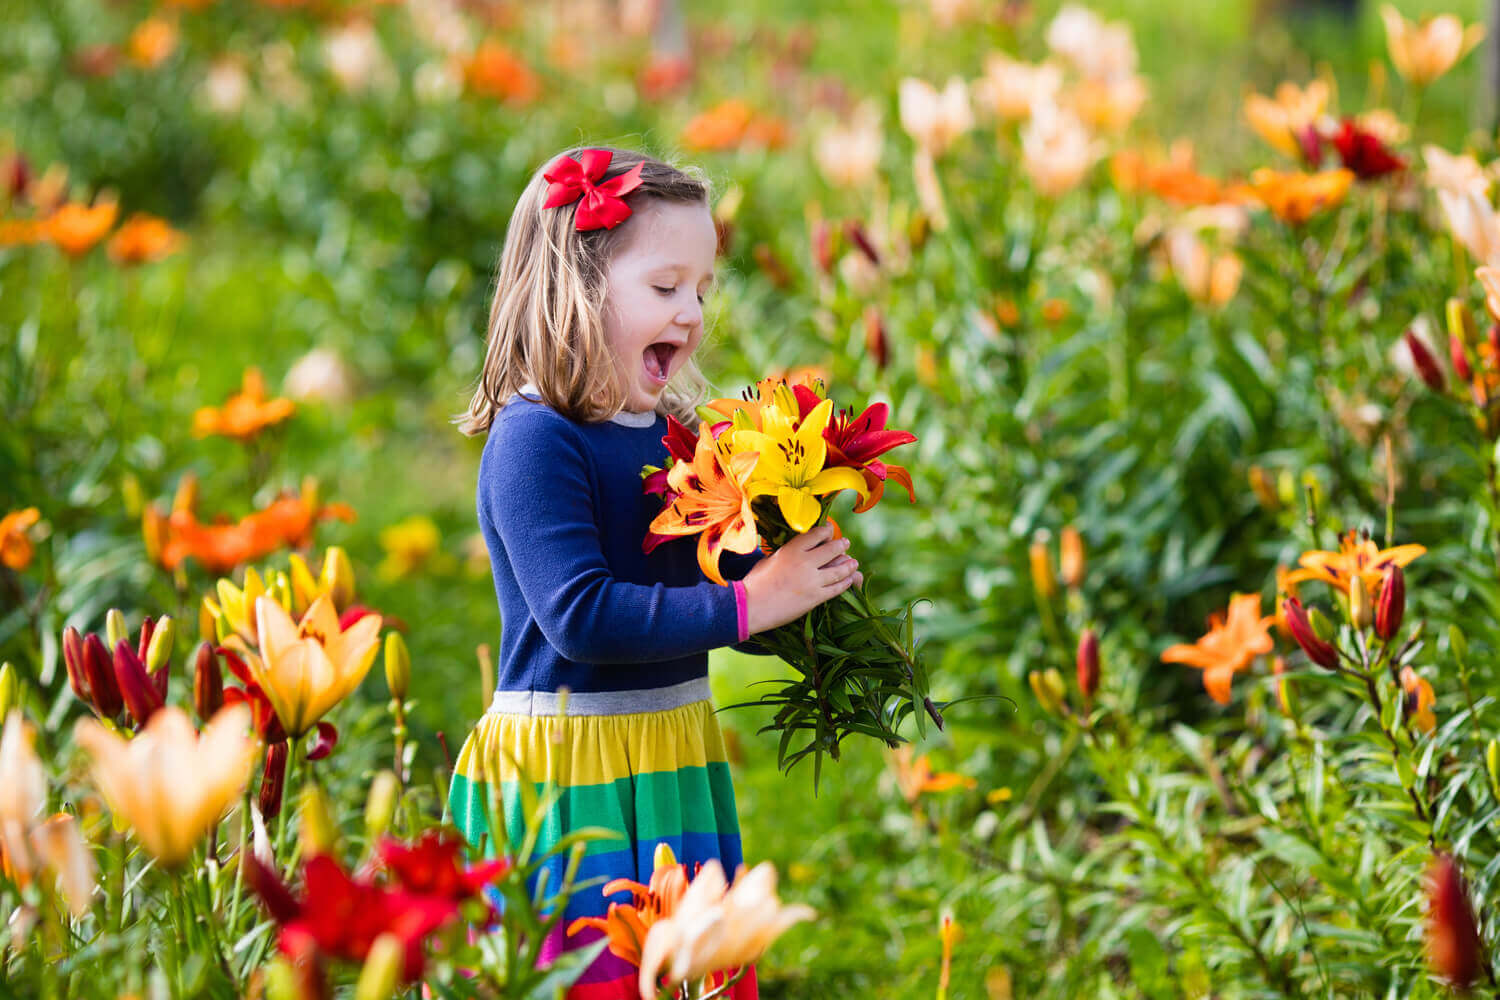 kid happy seeing different colours of flowers in hand